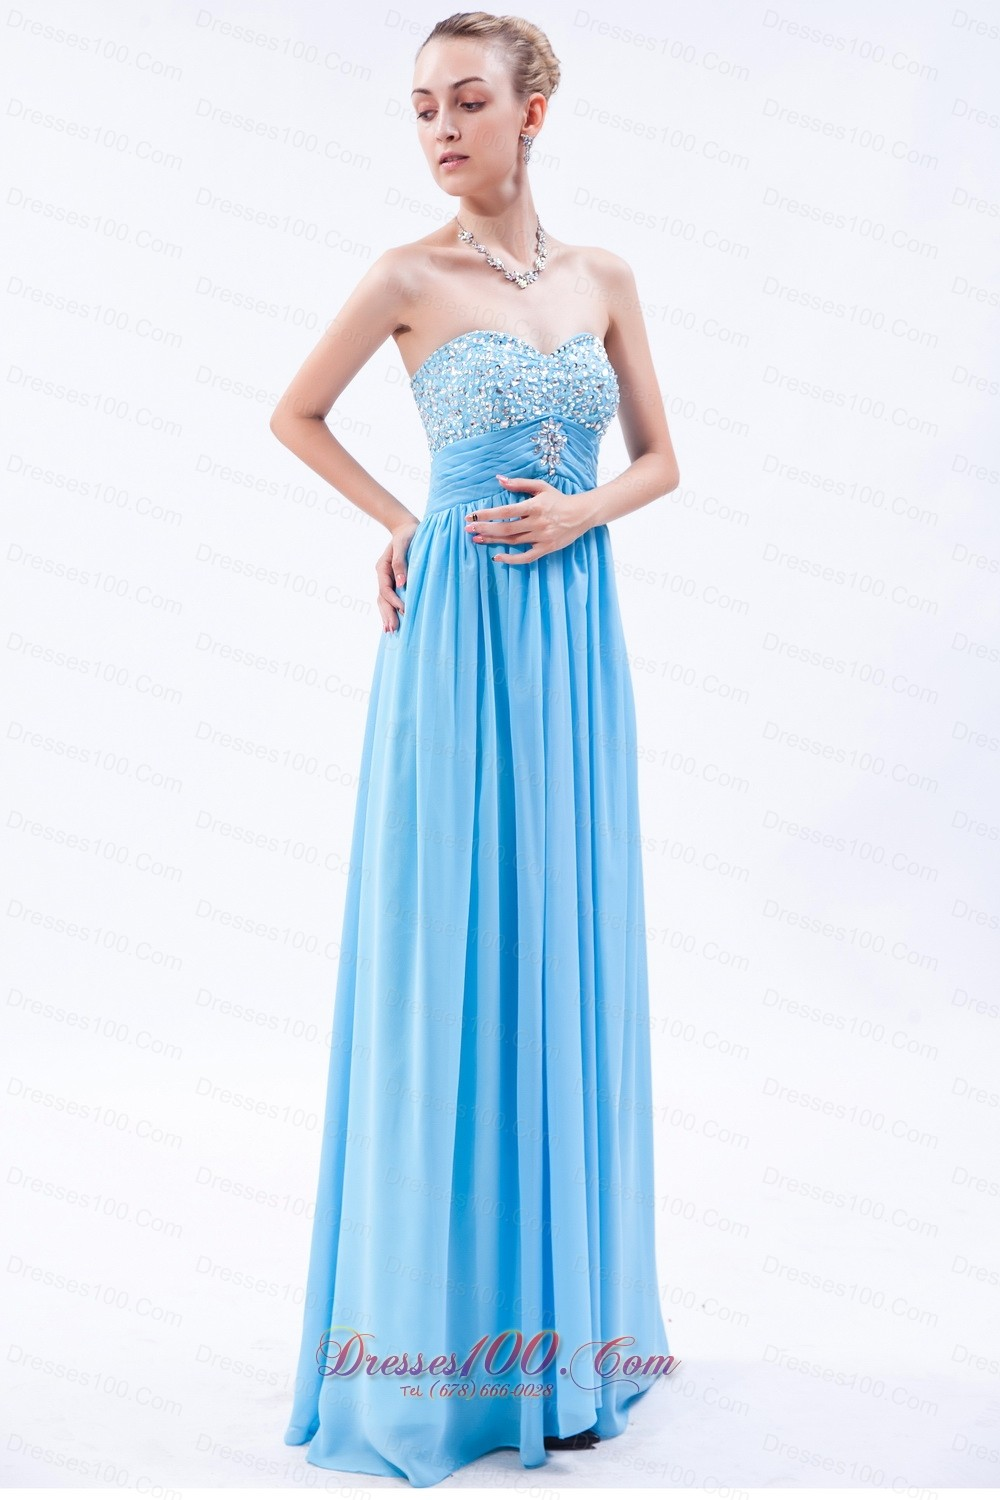 Baby Blue Empire Beaded Bust Prom Dress Pleating |Discount Prom ...